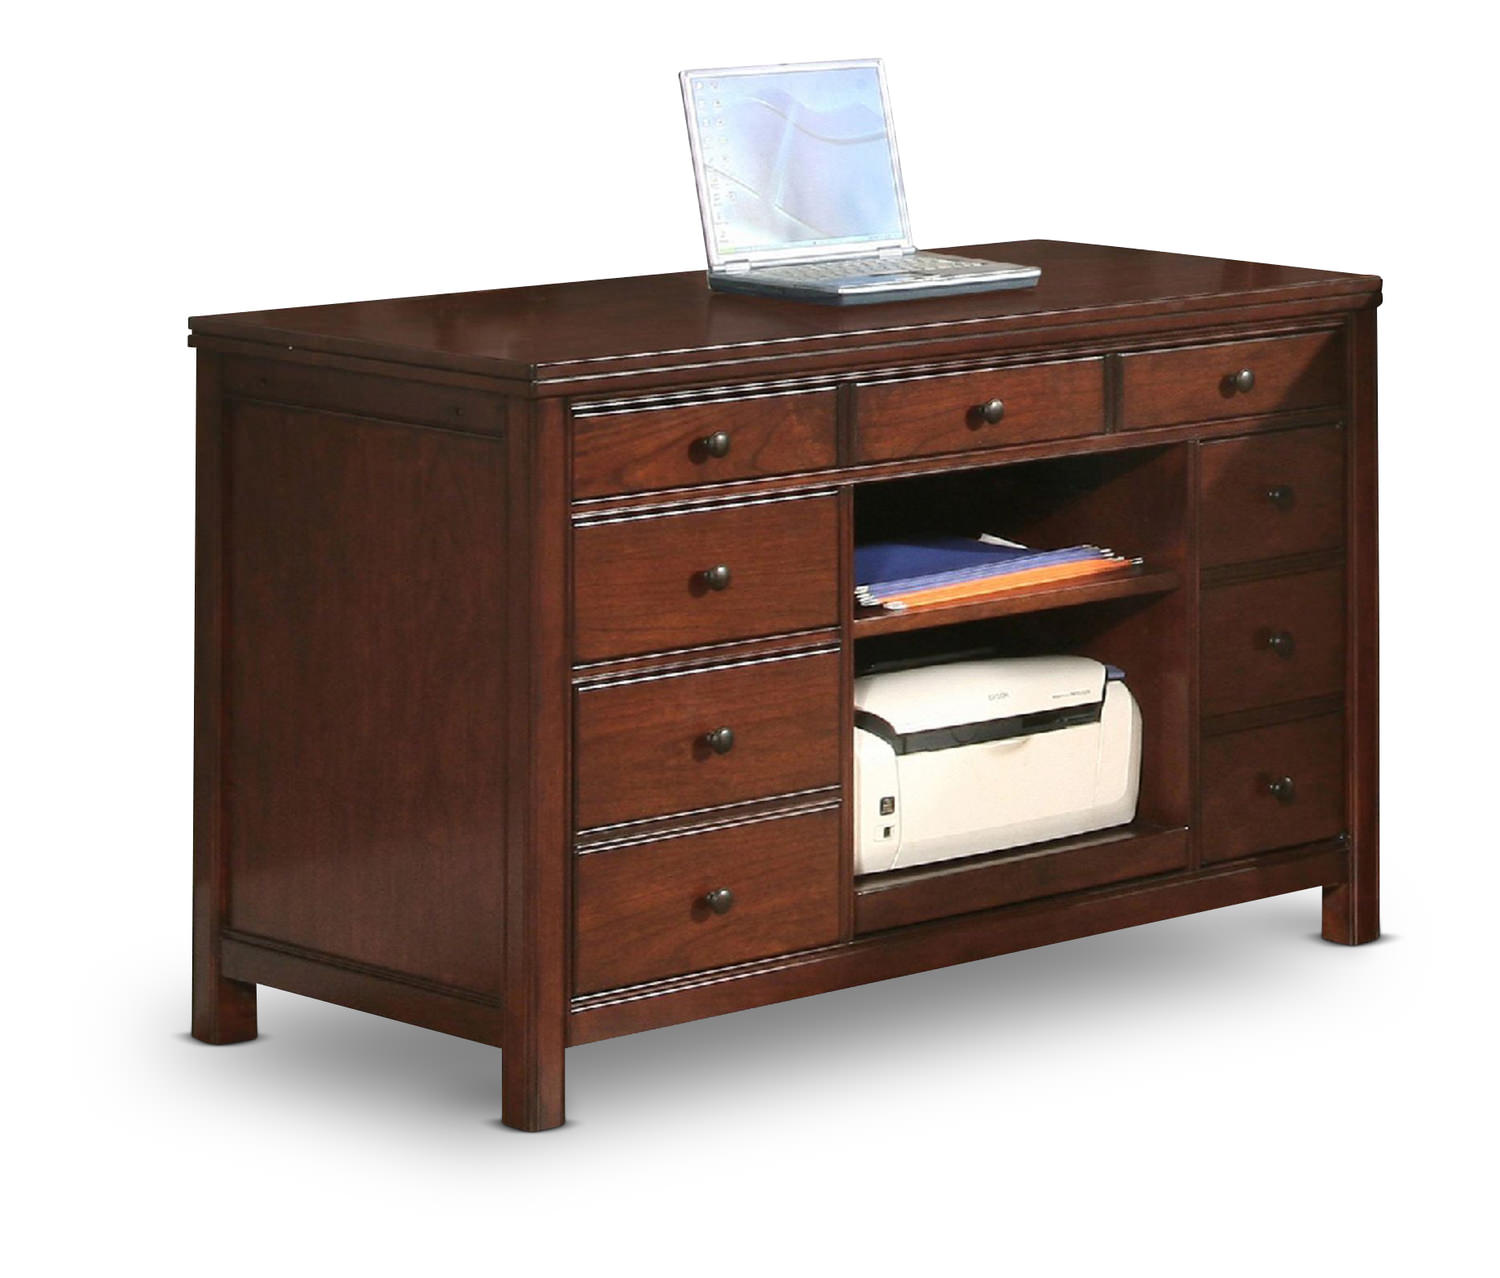 Office Credenza Dimensions Images